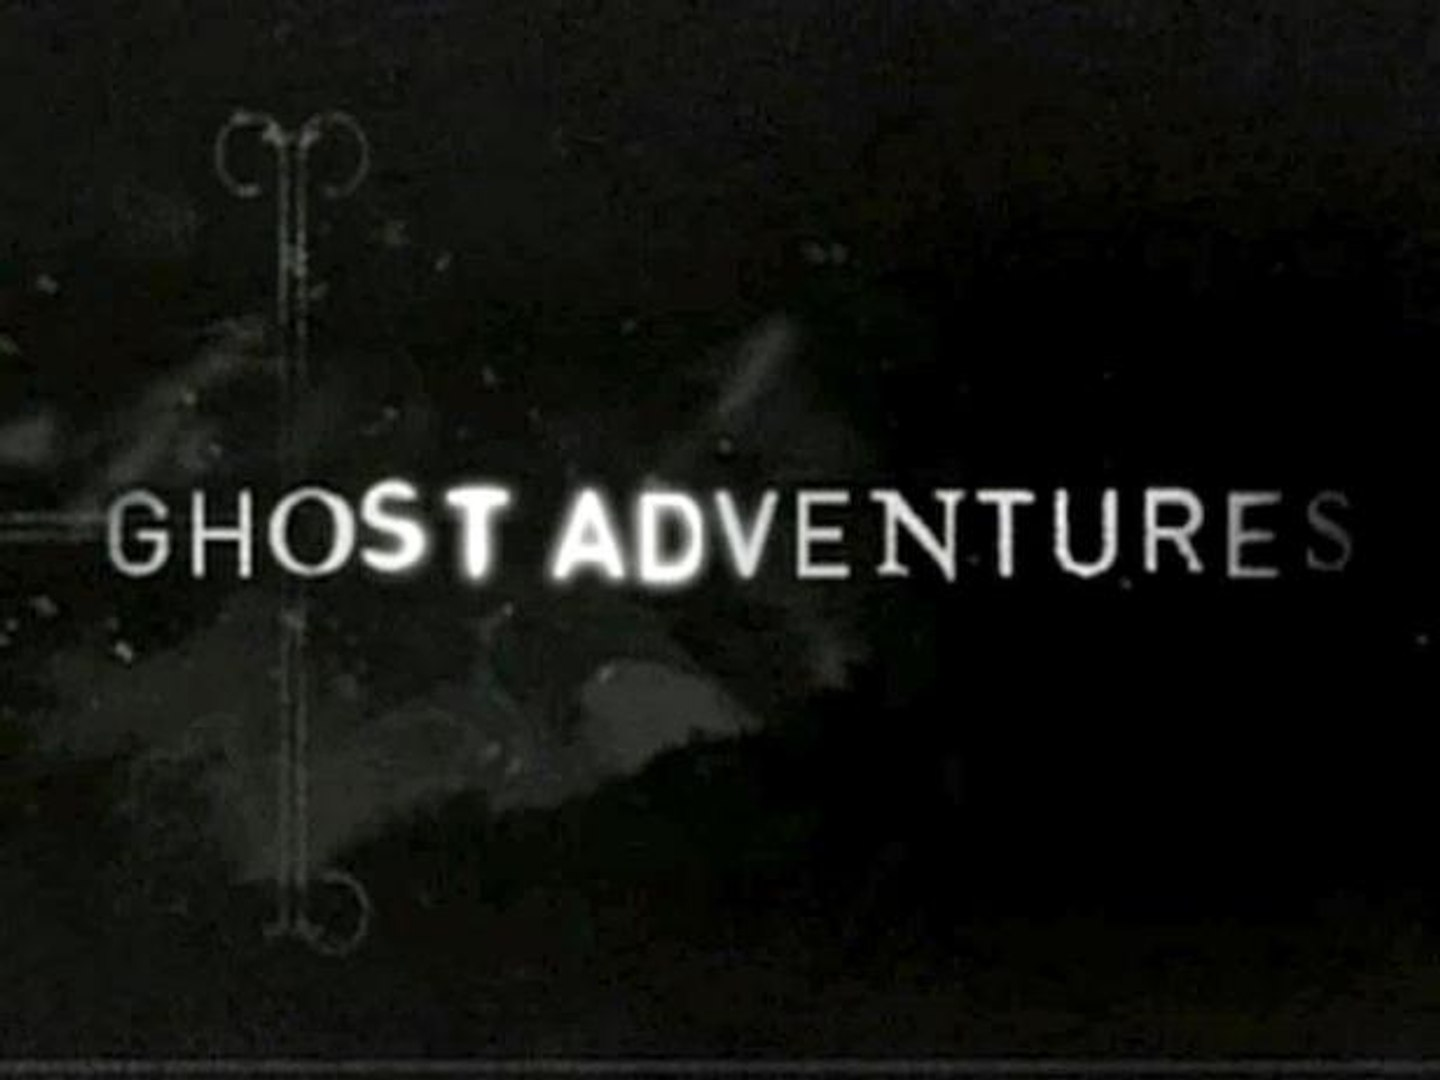 Ghost Adventures 2020 Halloween Special Dailymotion Ghost Adventures S15E07 Haunted Museum Halloween Special   Video